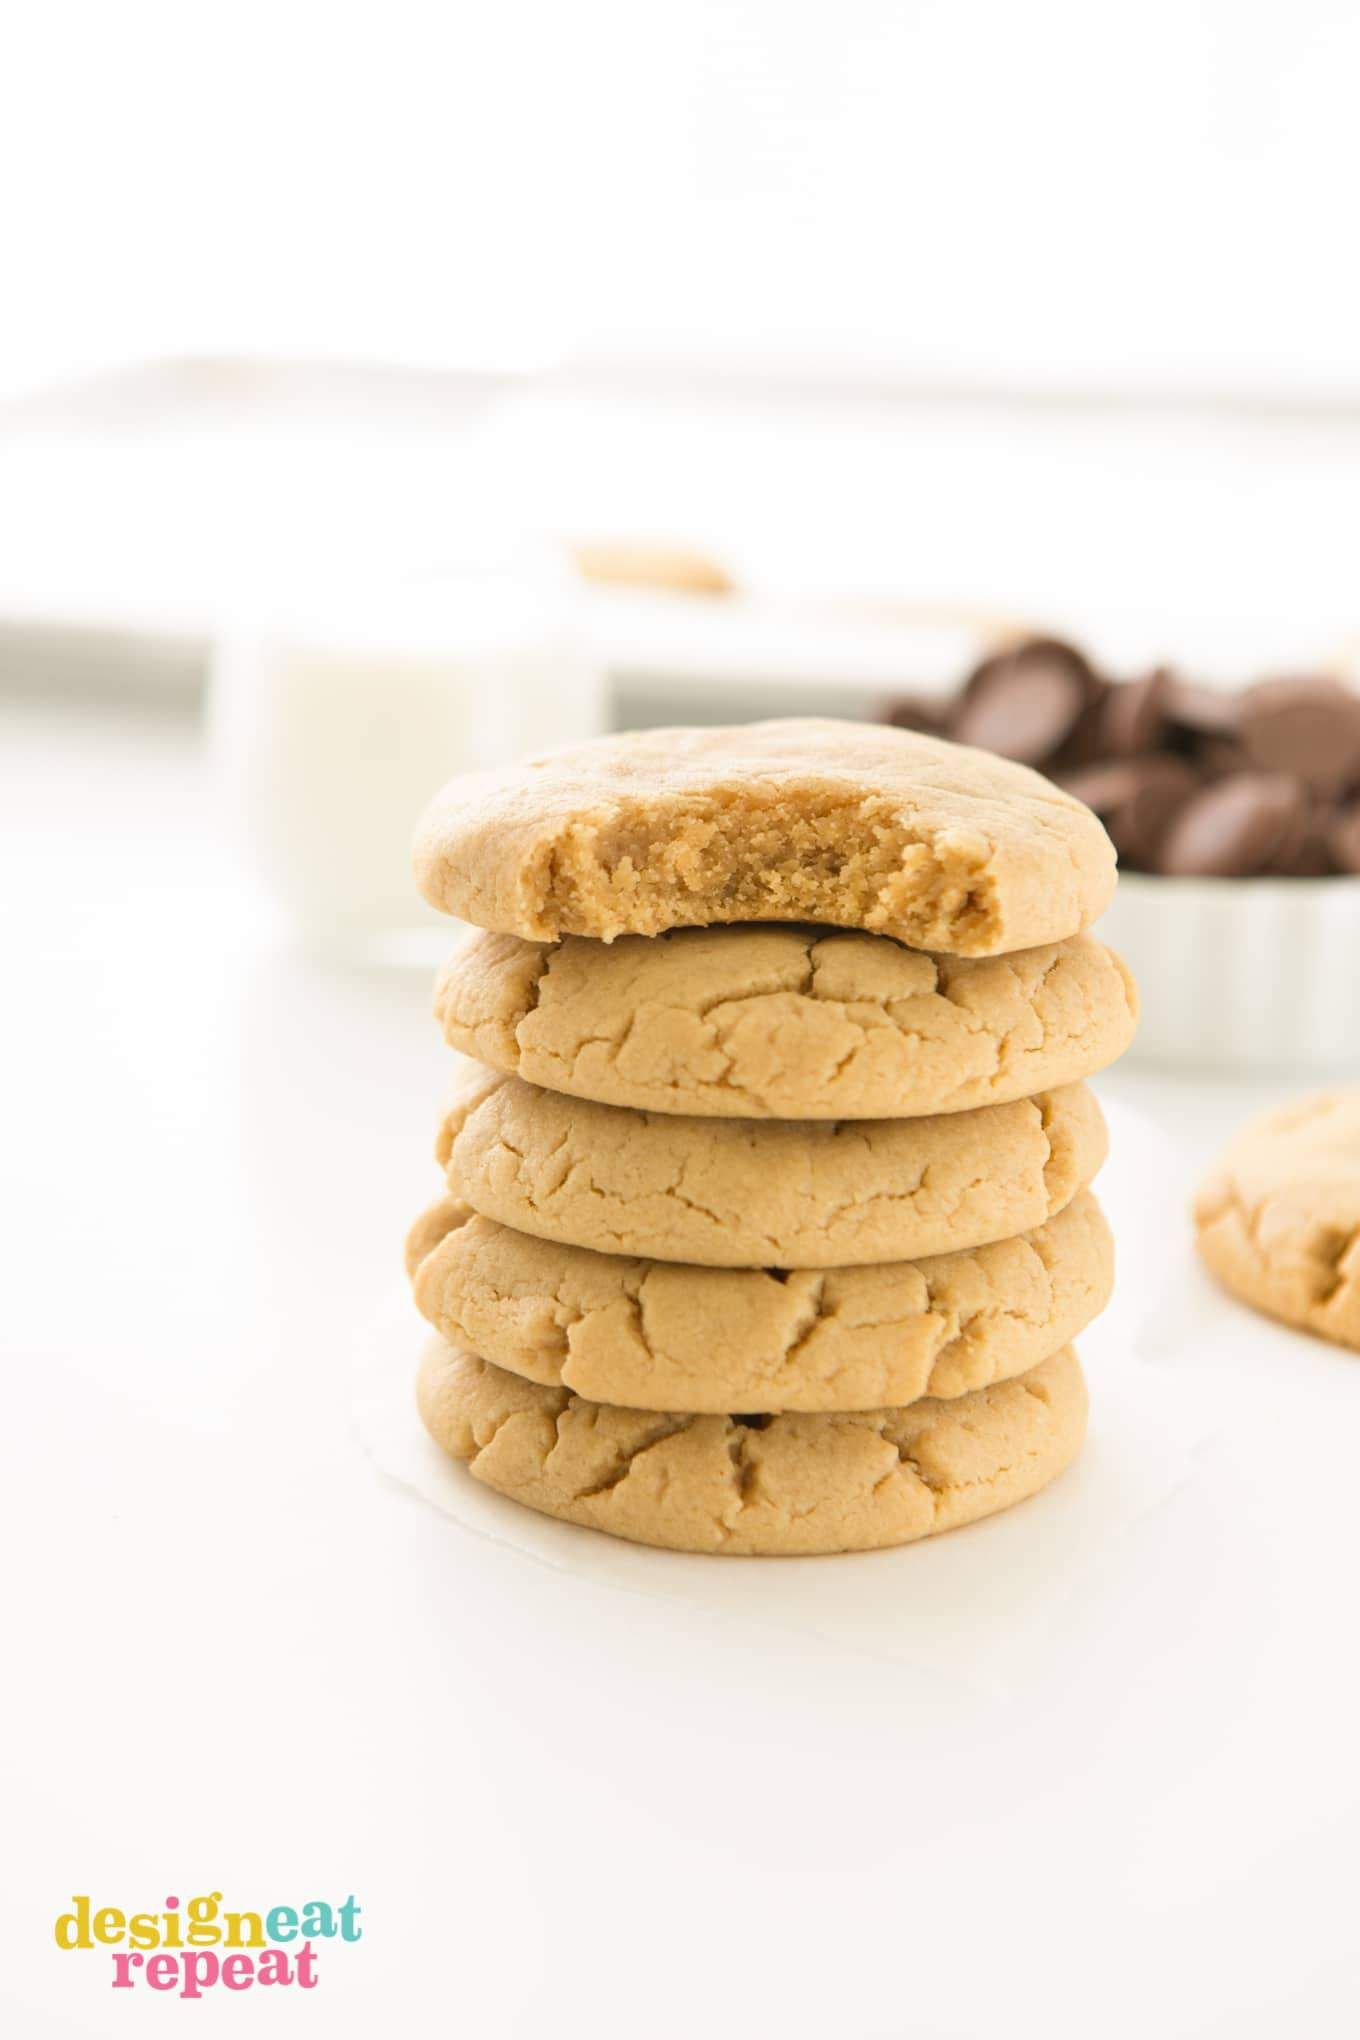 Stack of peanut butter cookies with bite taken out of top cookie.